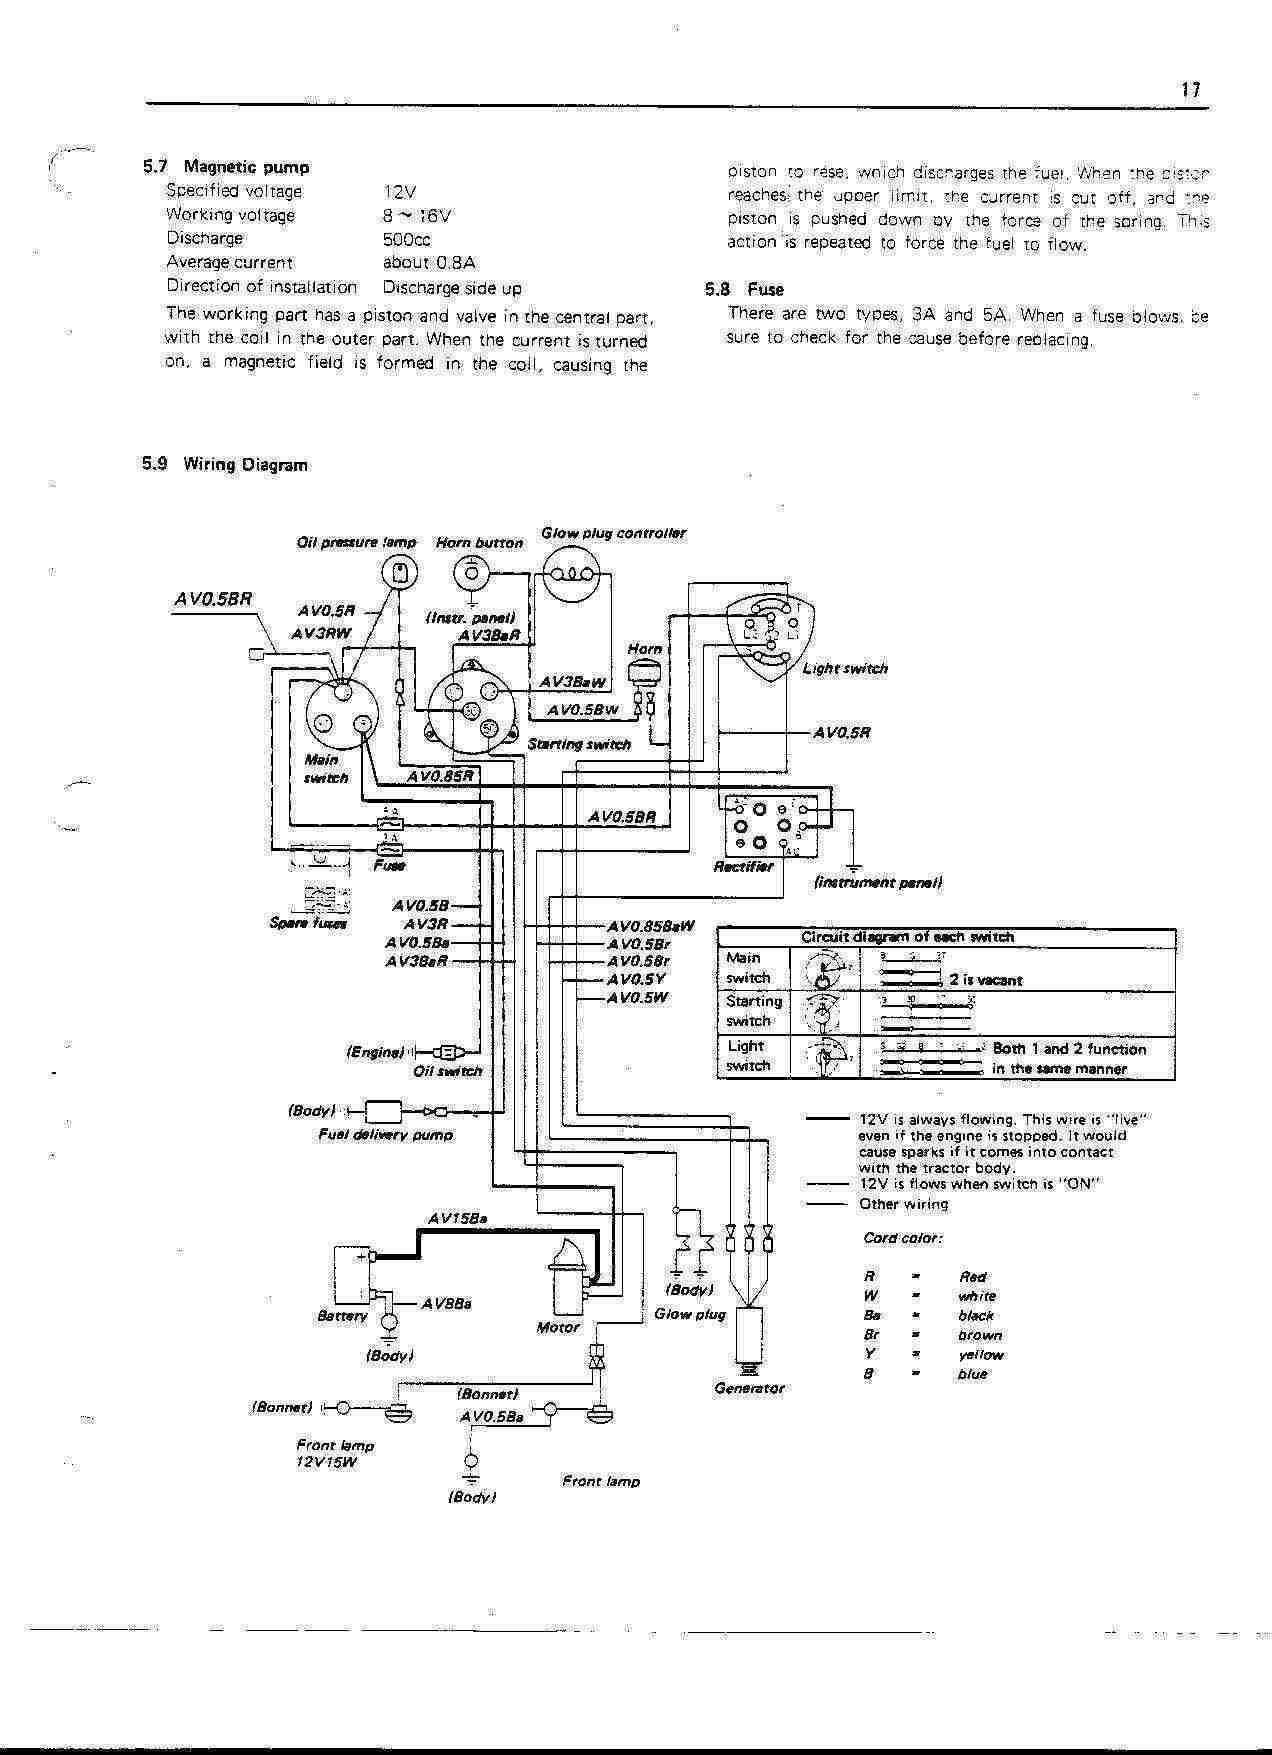 Kubota Wiring Diagram Kubota Wiring Diagram Images